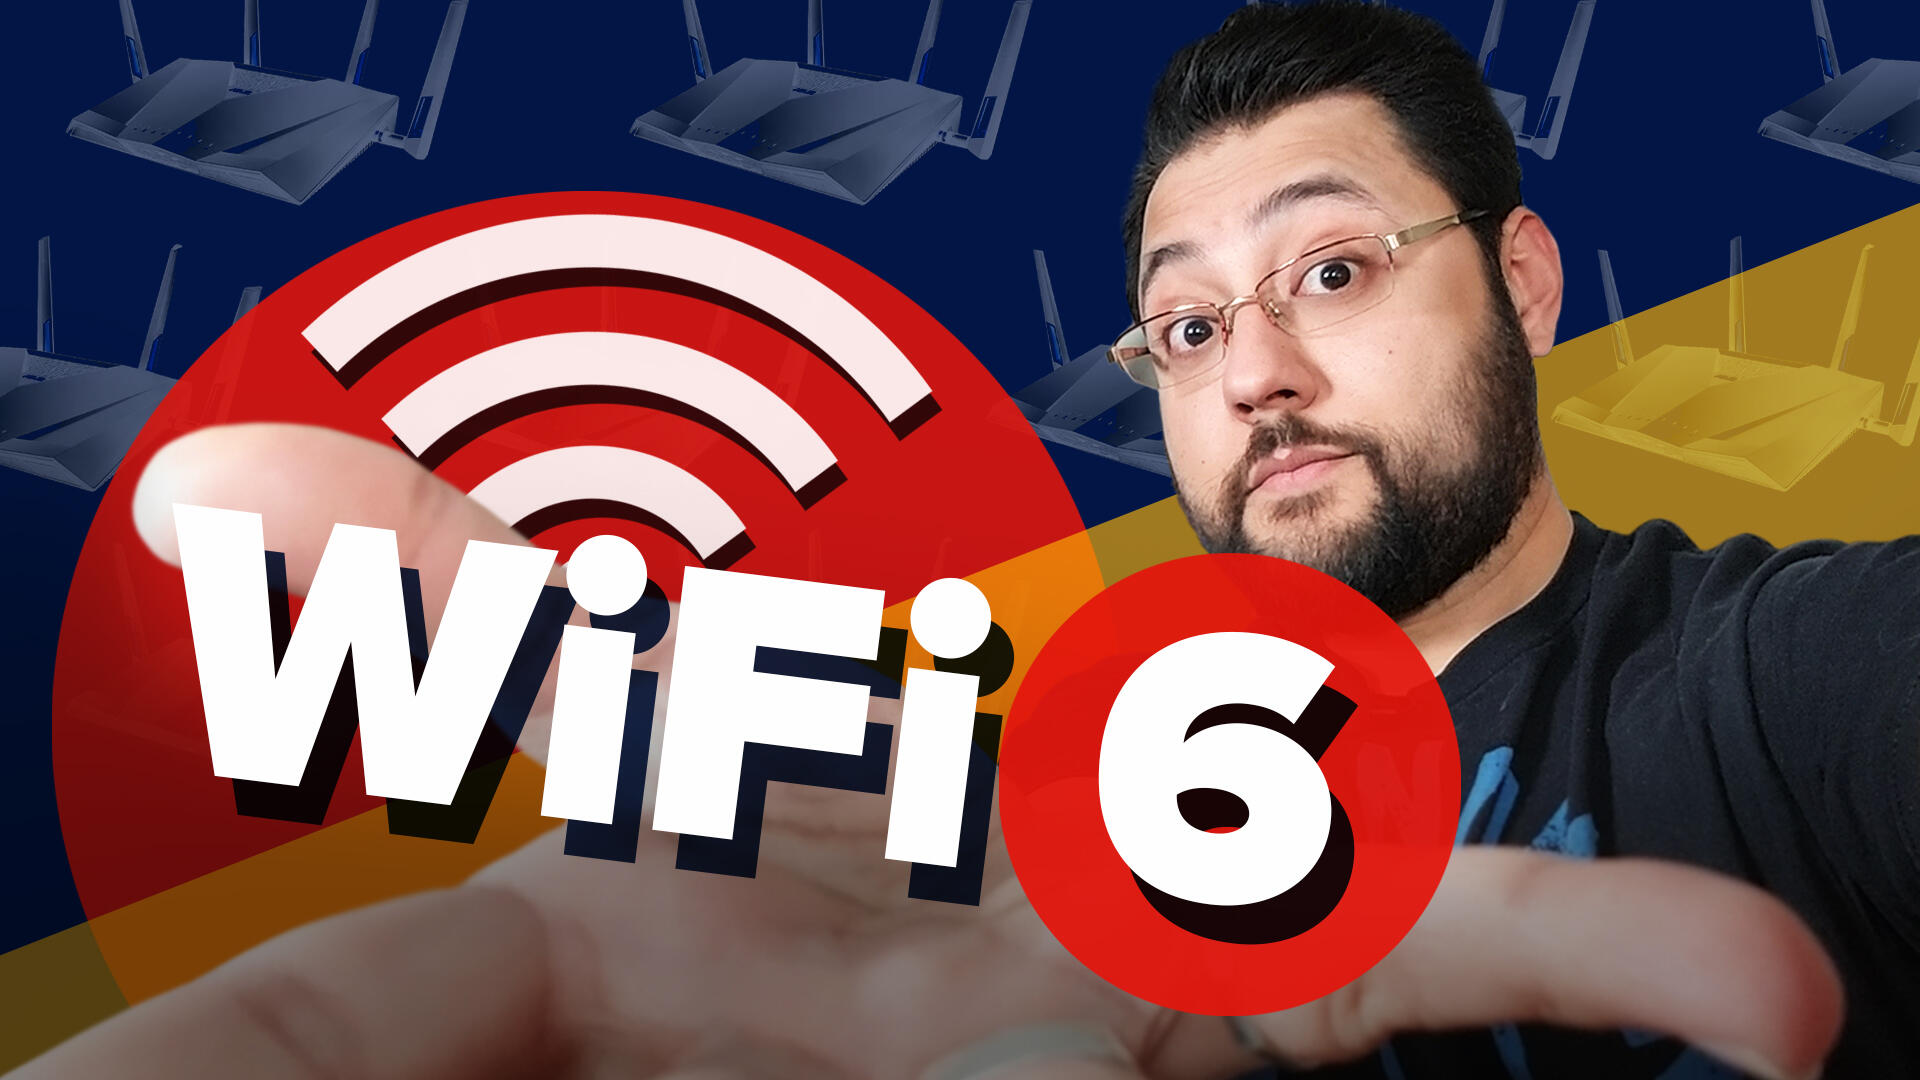 Video: Wi-Fi 6: What the heck is it?